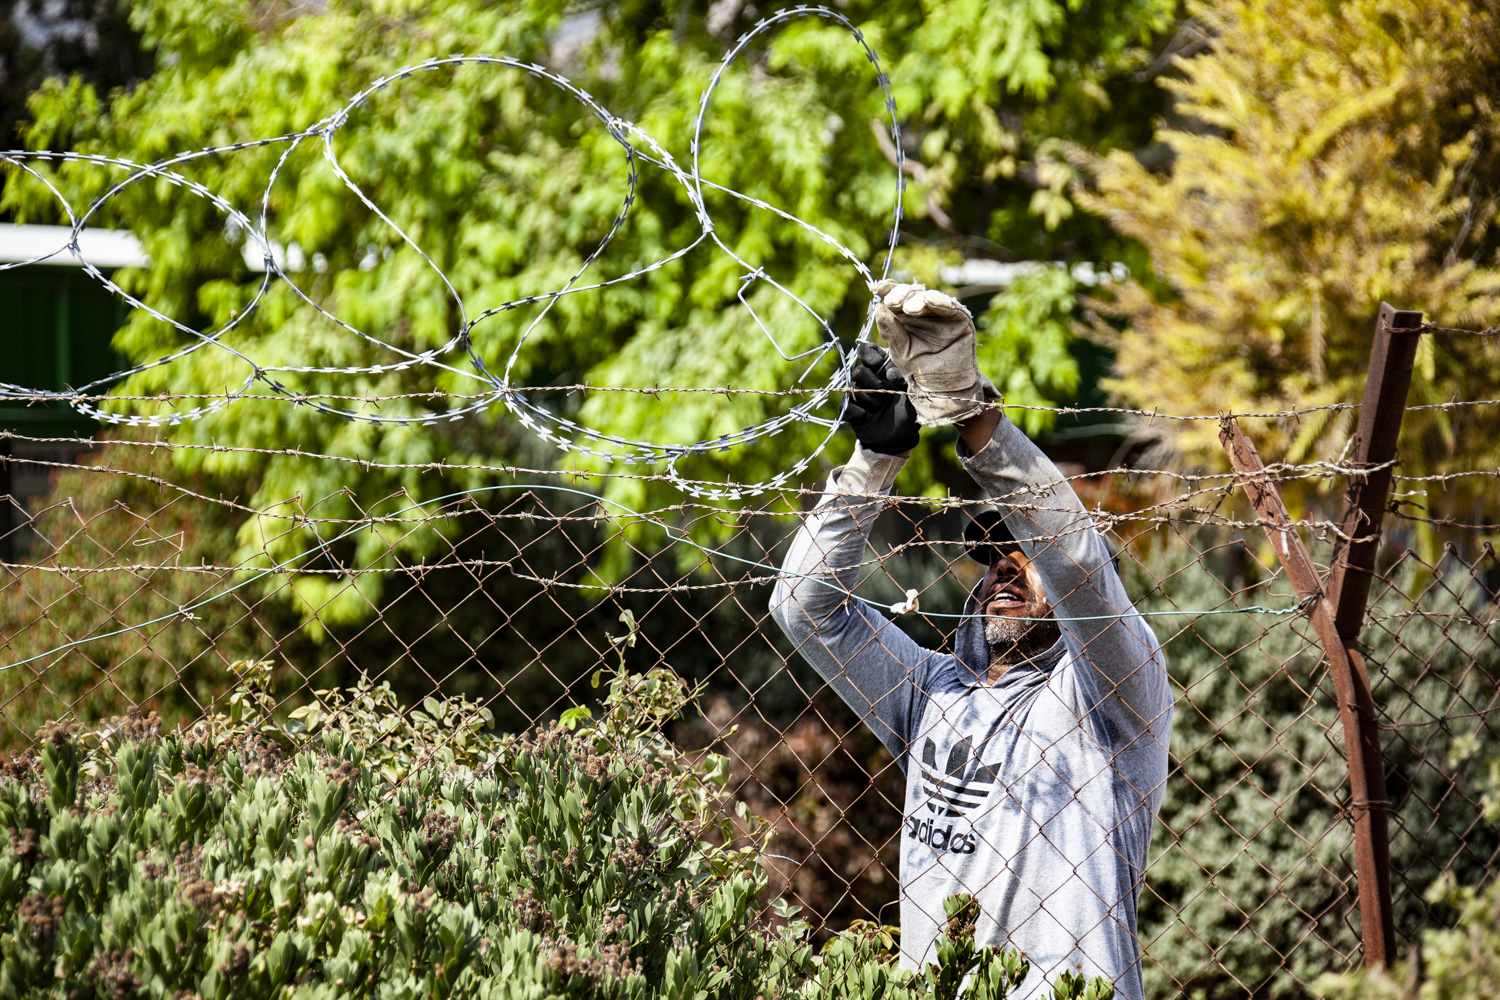 Kibbutz Nir David installs new barbwire on its perimeter fence the morning of a large planned demonstration demanding it opens the Asi River to the general public, on August 14, 2020. (Photo by Mati Milstein)